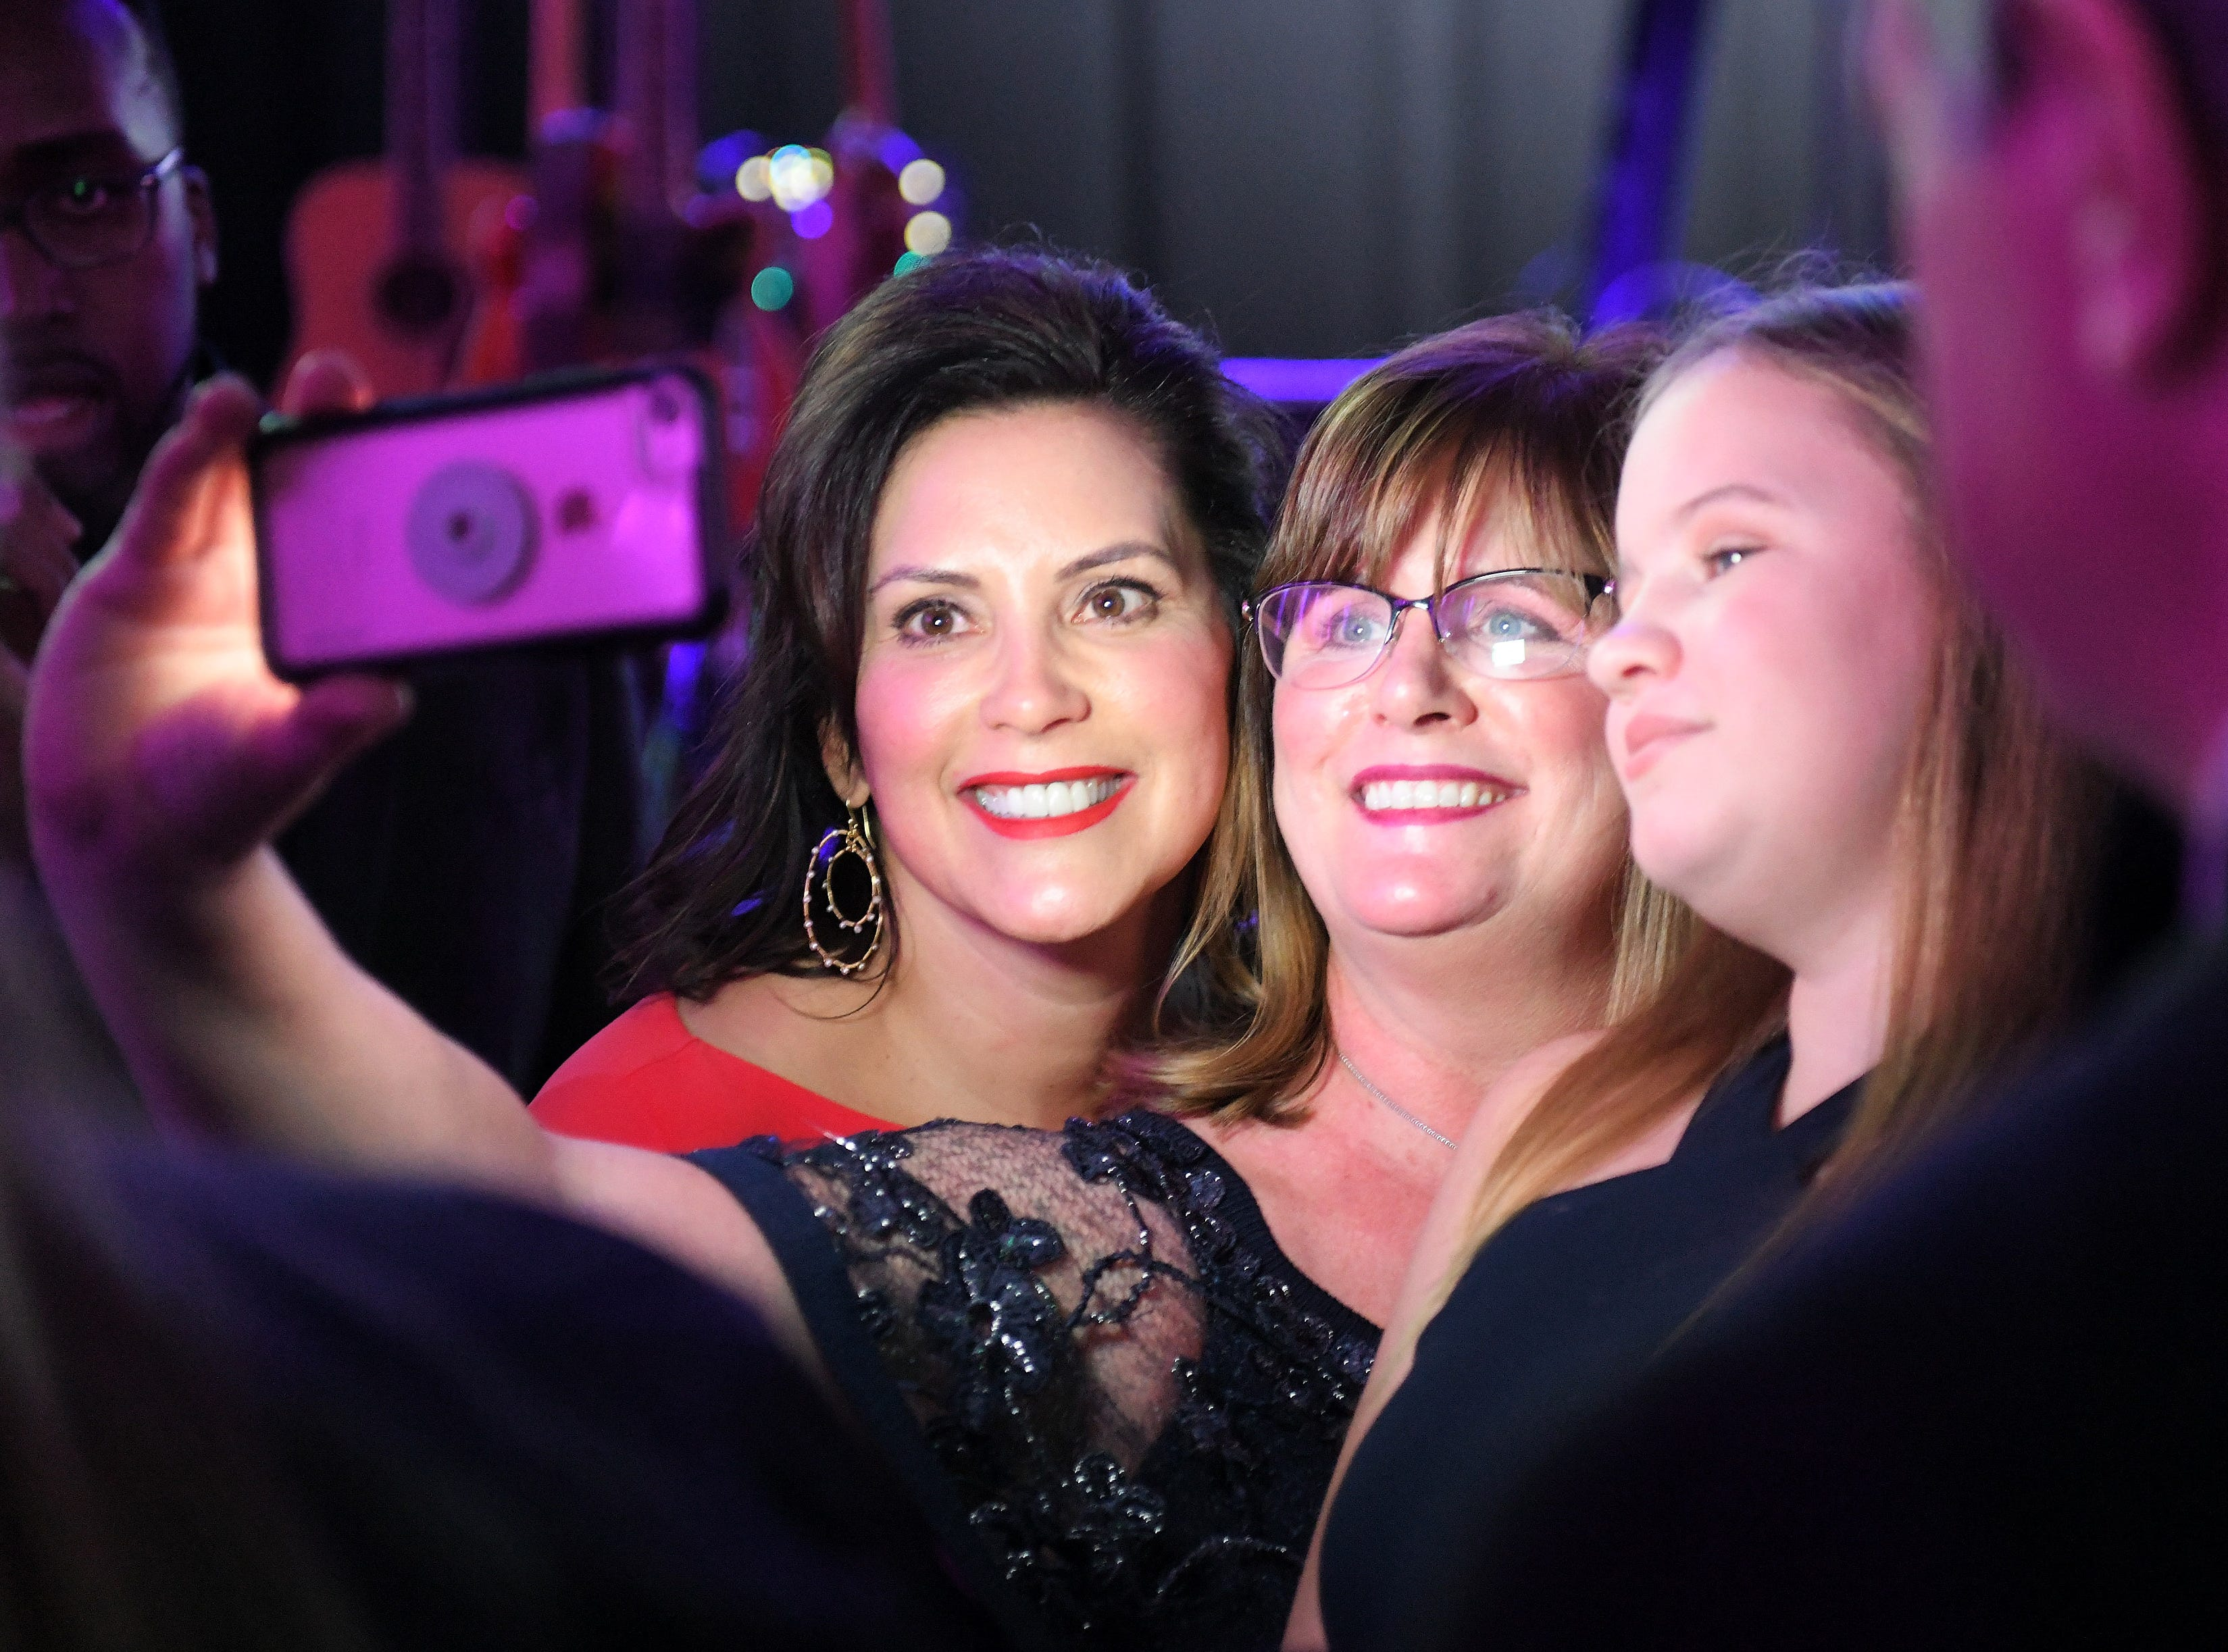 Gov. Gretchen Whitmer left, takes a photo with Aimee  Cowher of Grosse Pointe Farms and her daughter, Abi Cone, 15,  at the inauguration celebration in the Grand Riverview Ballroom at Cobo Center in Detroit on Jan. 1, 2019.